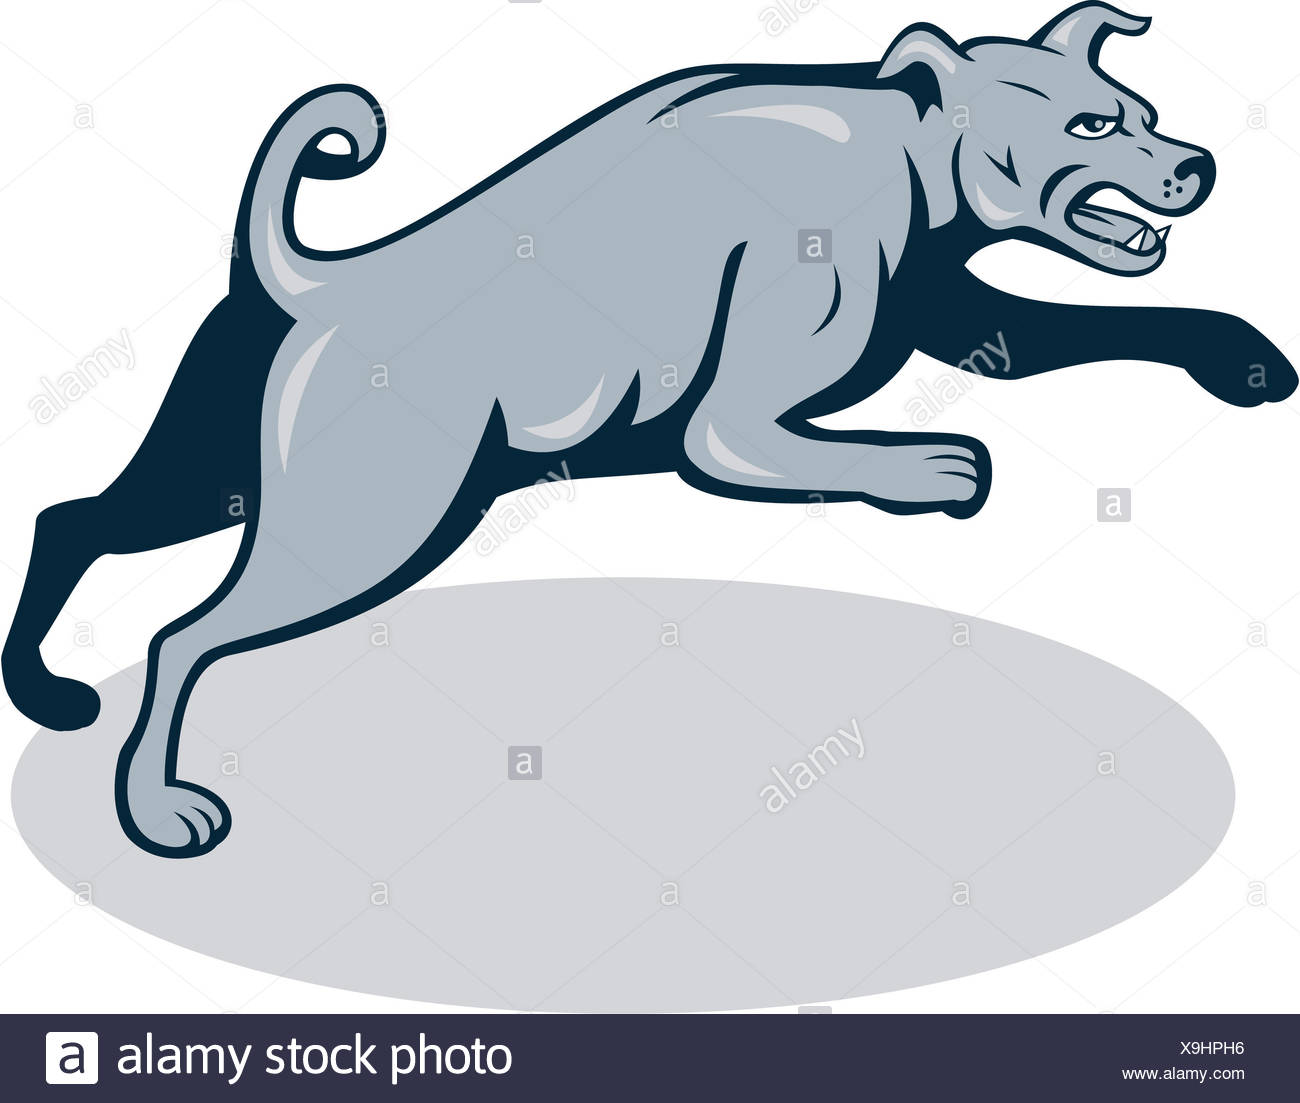 Barking Dog Cartoon Illustration Imágenes De Stock Barking